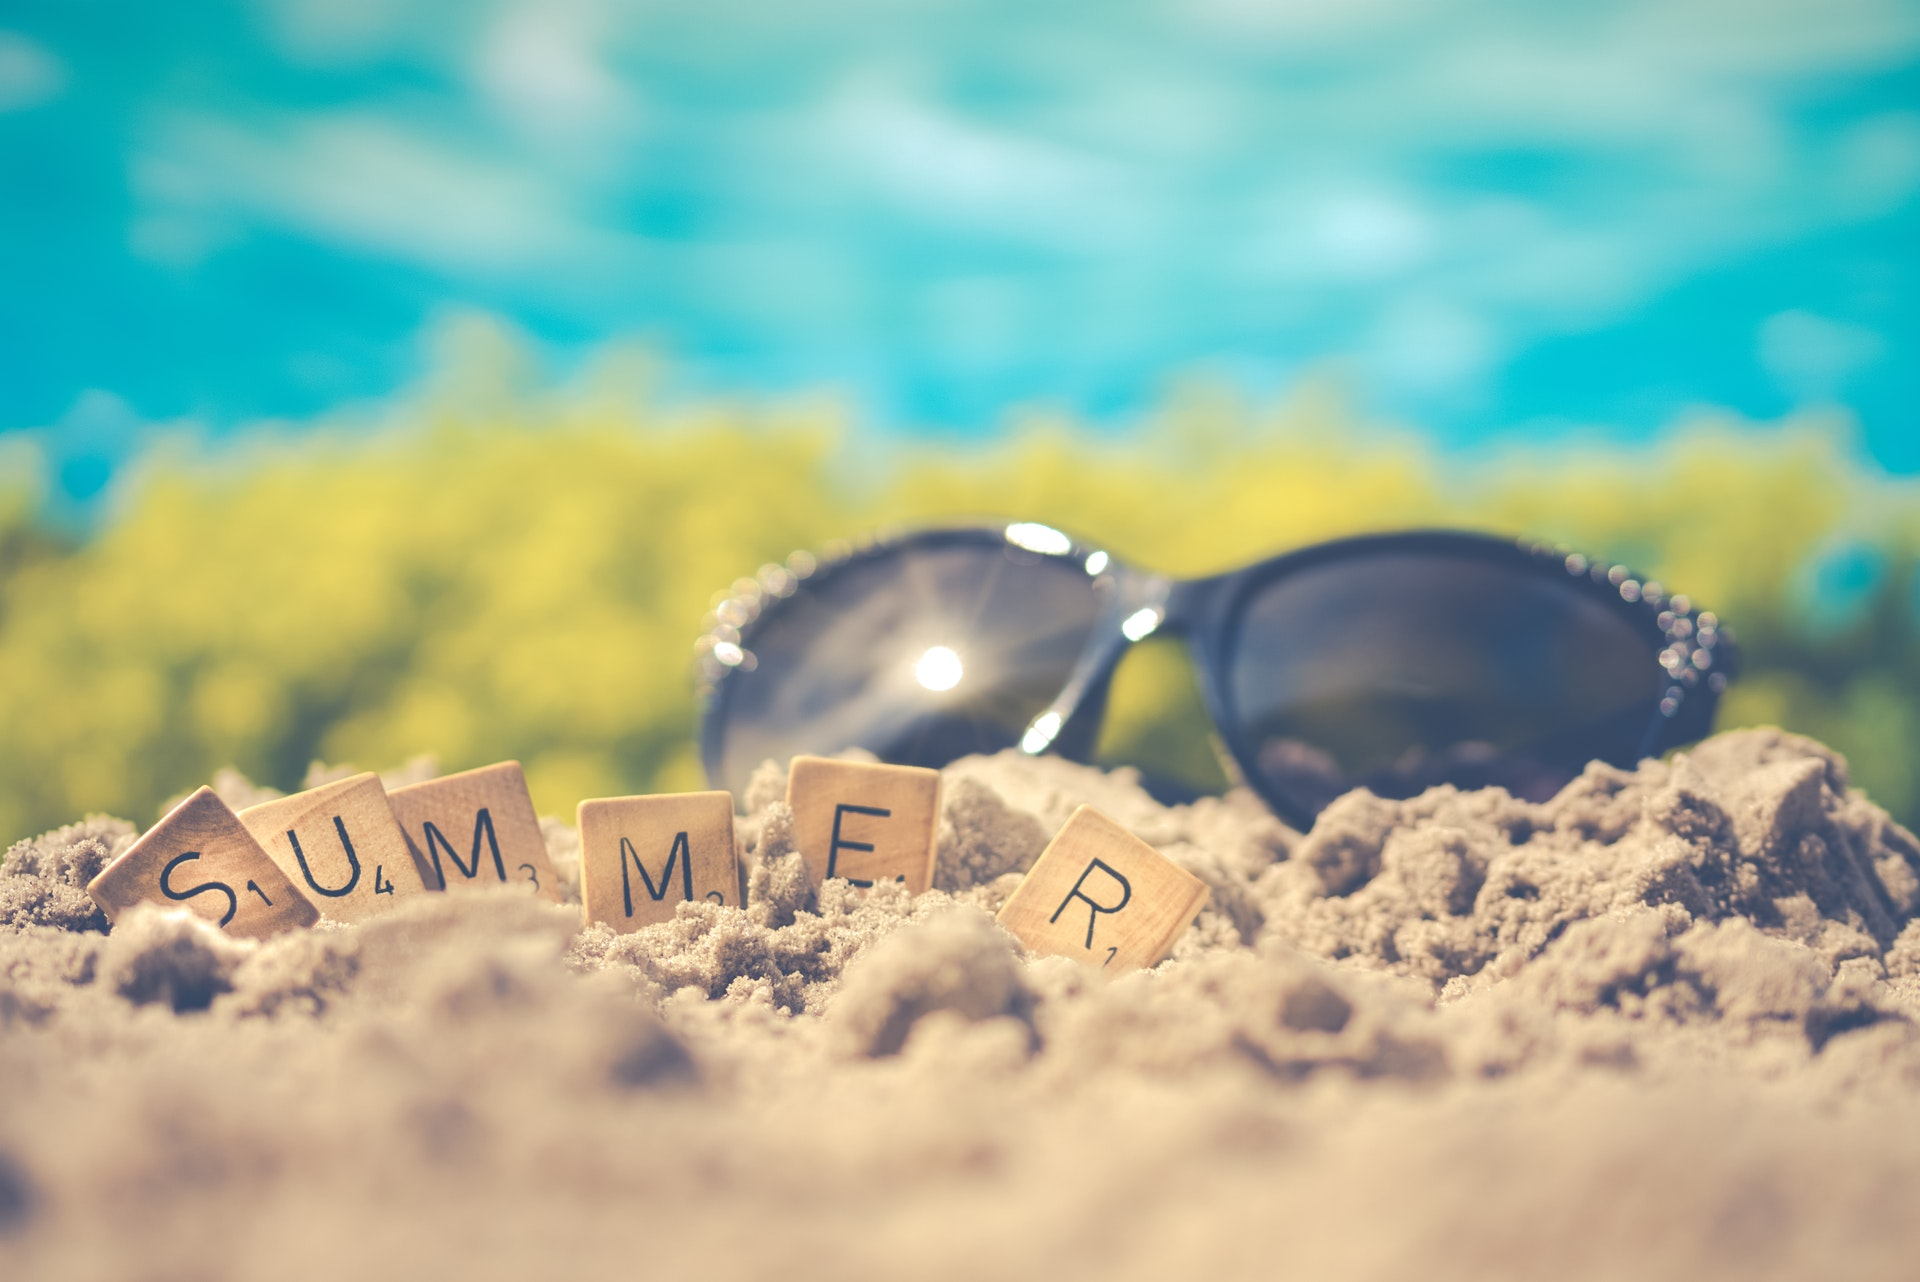 June journal prompts to use as we shift into the summer months.